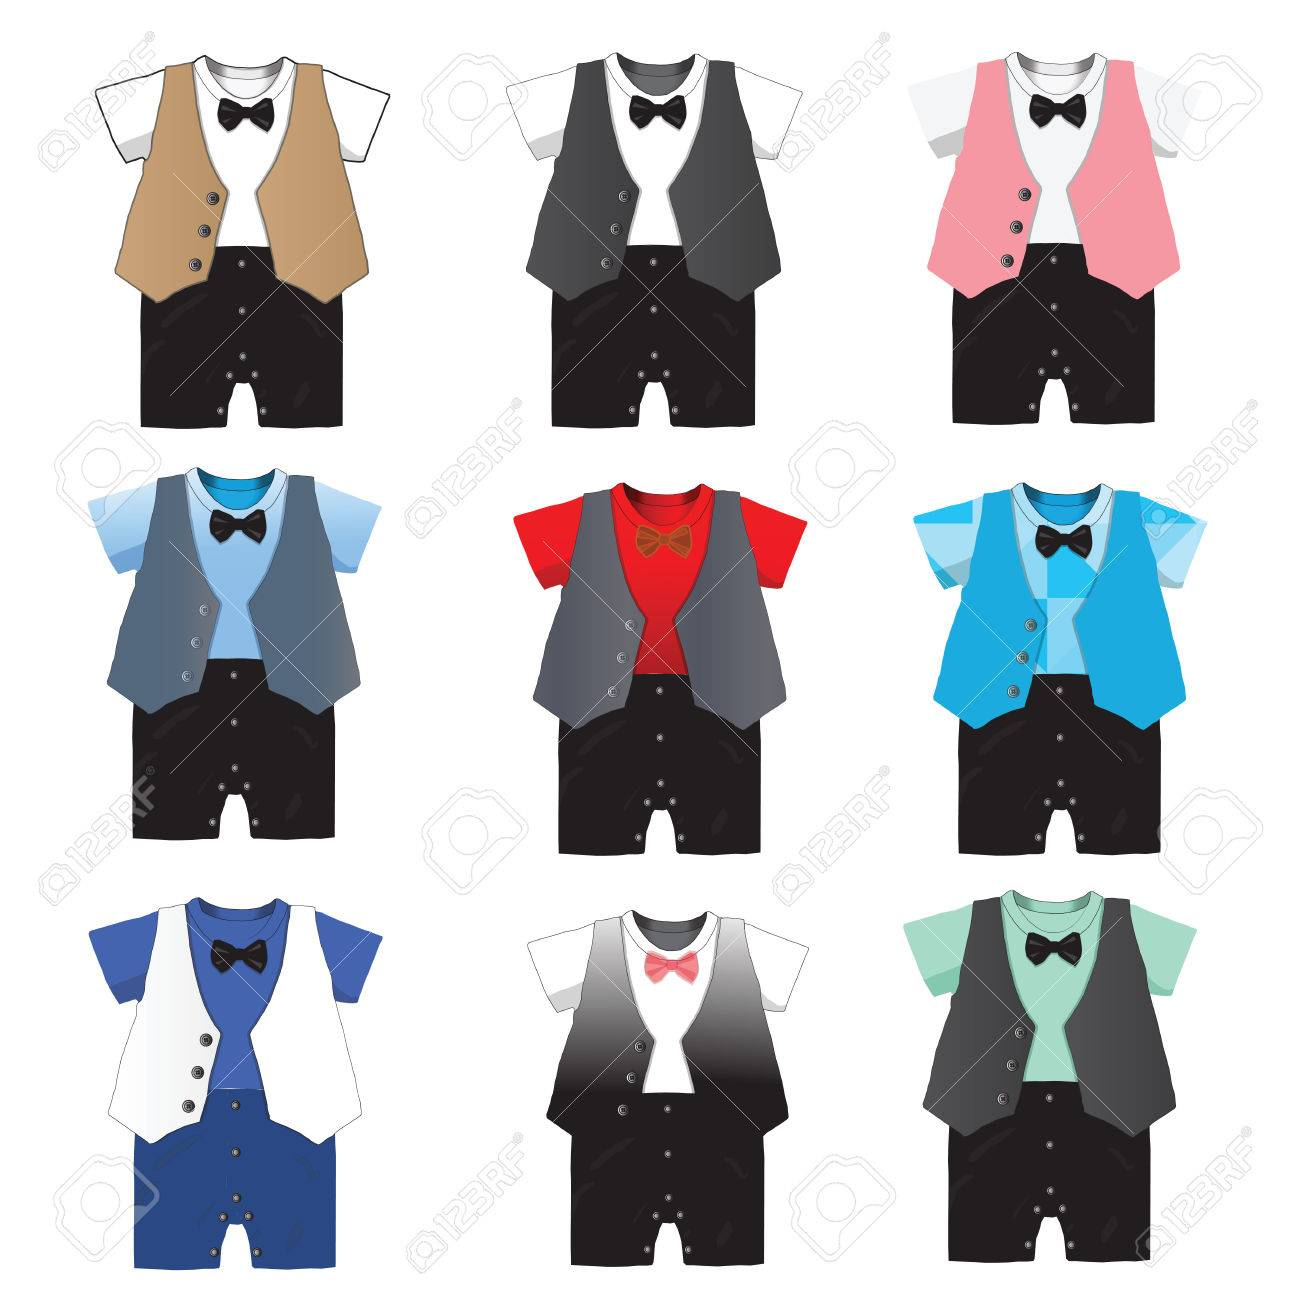 0710d9c25362 Baby Boy Formal Wear Wedding Party With Bow Tie